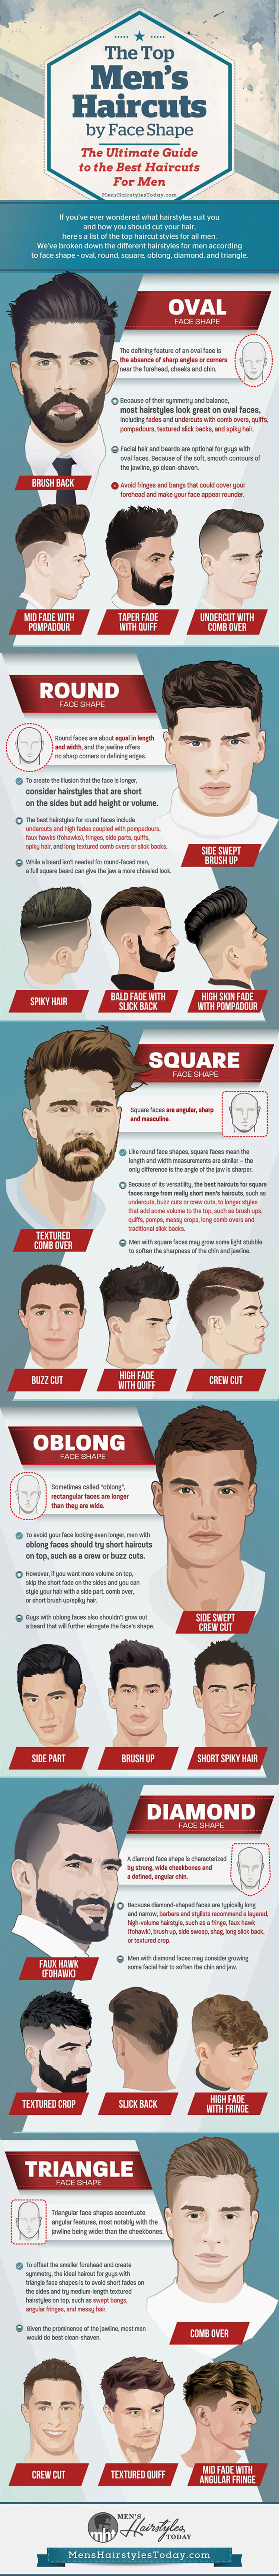 How To Style Your Man - Haircuts By Face